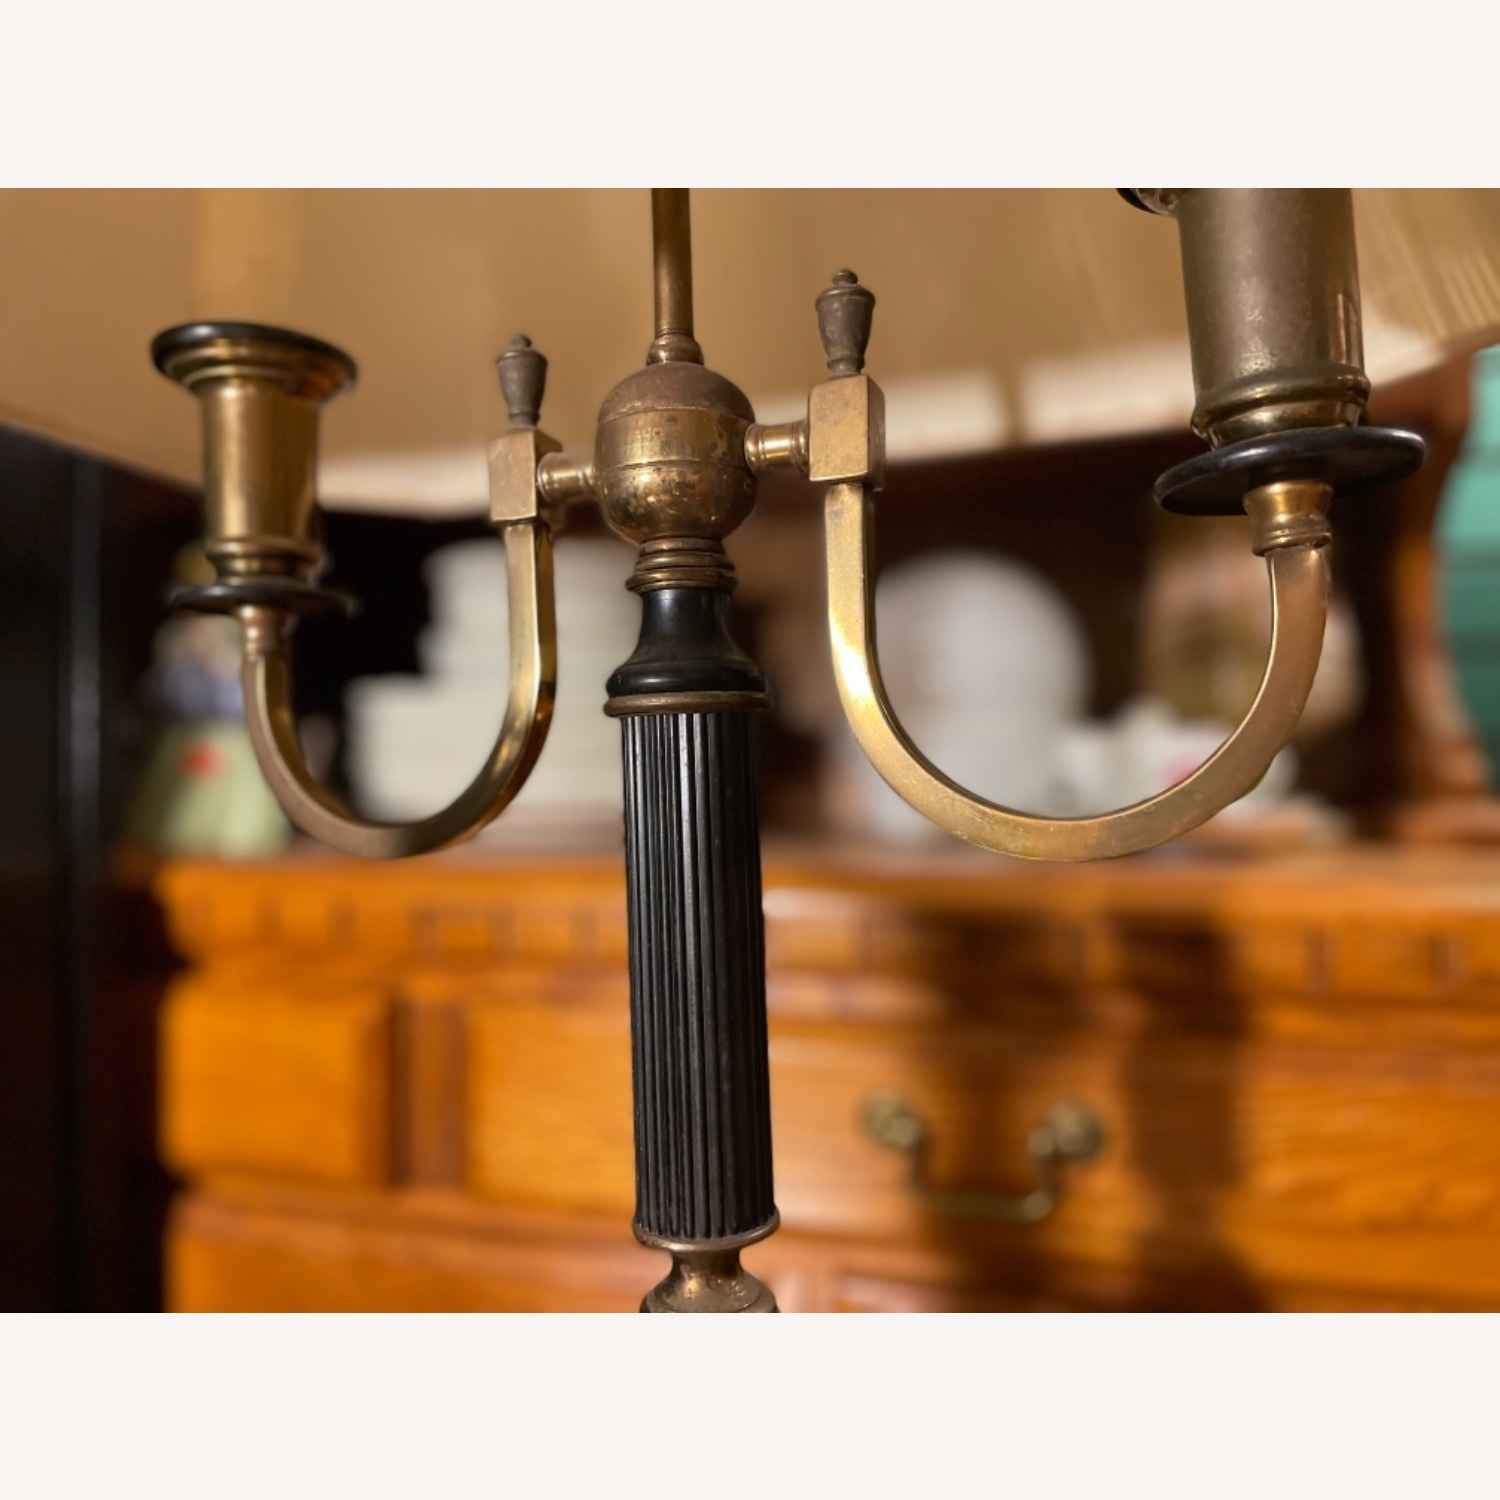 Antique 1930s Set of Brass Candle Sticks & Lamp - image-9